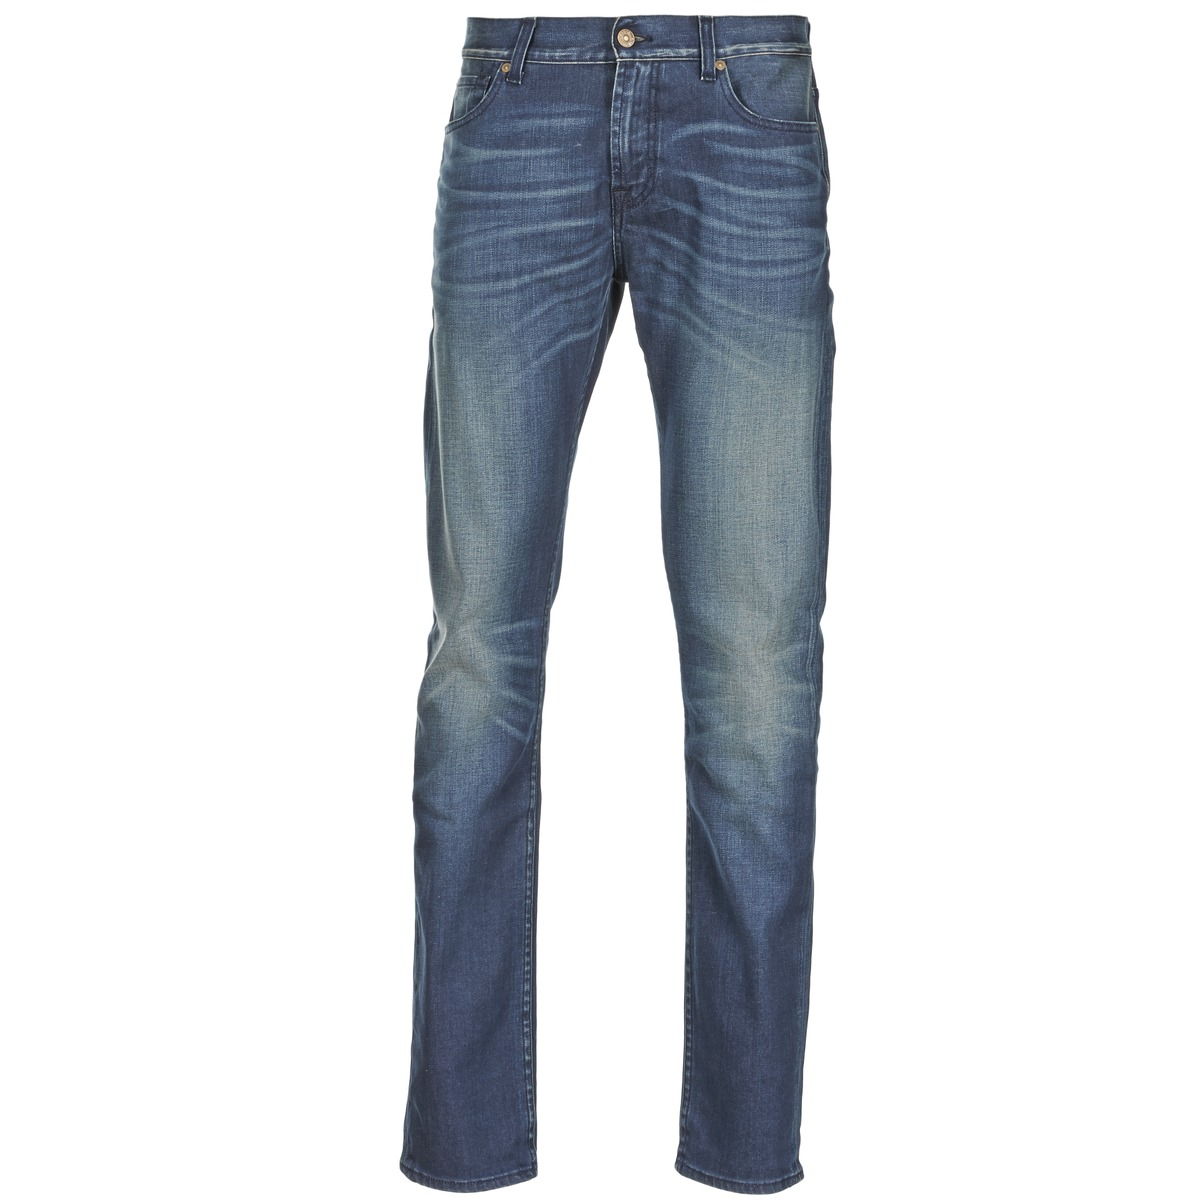 7 for all mankind  ronnie electric mind  men's skinny jeans in blue